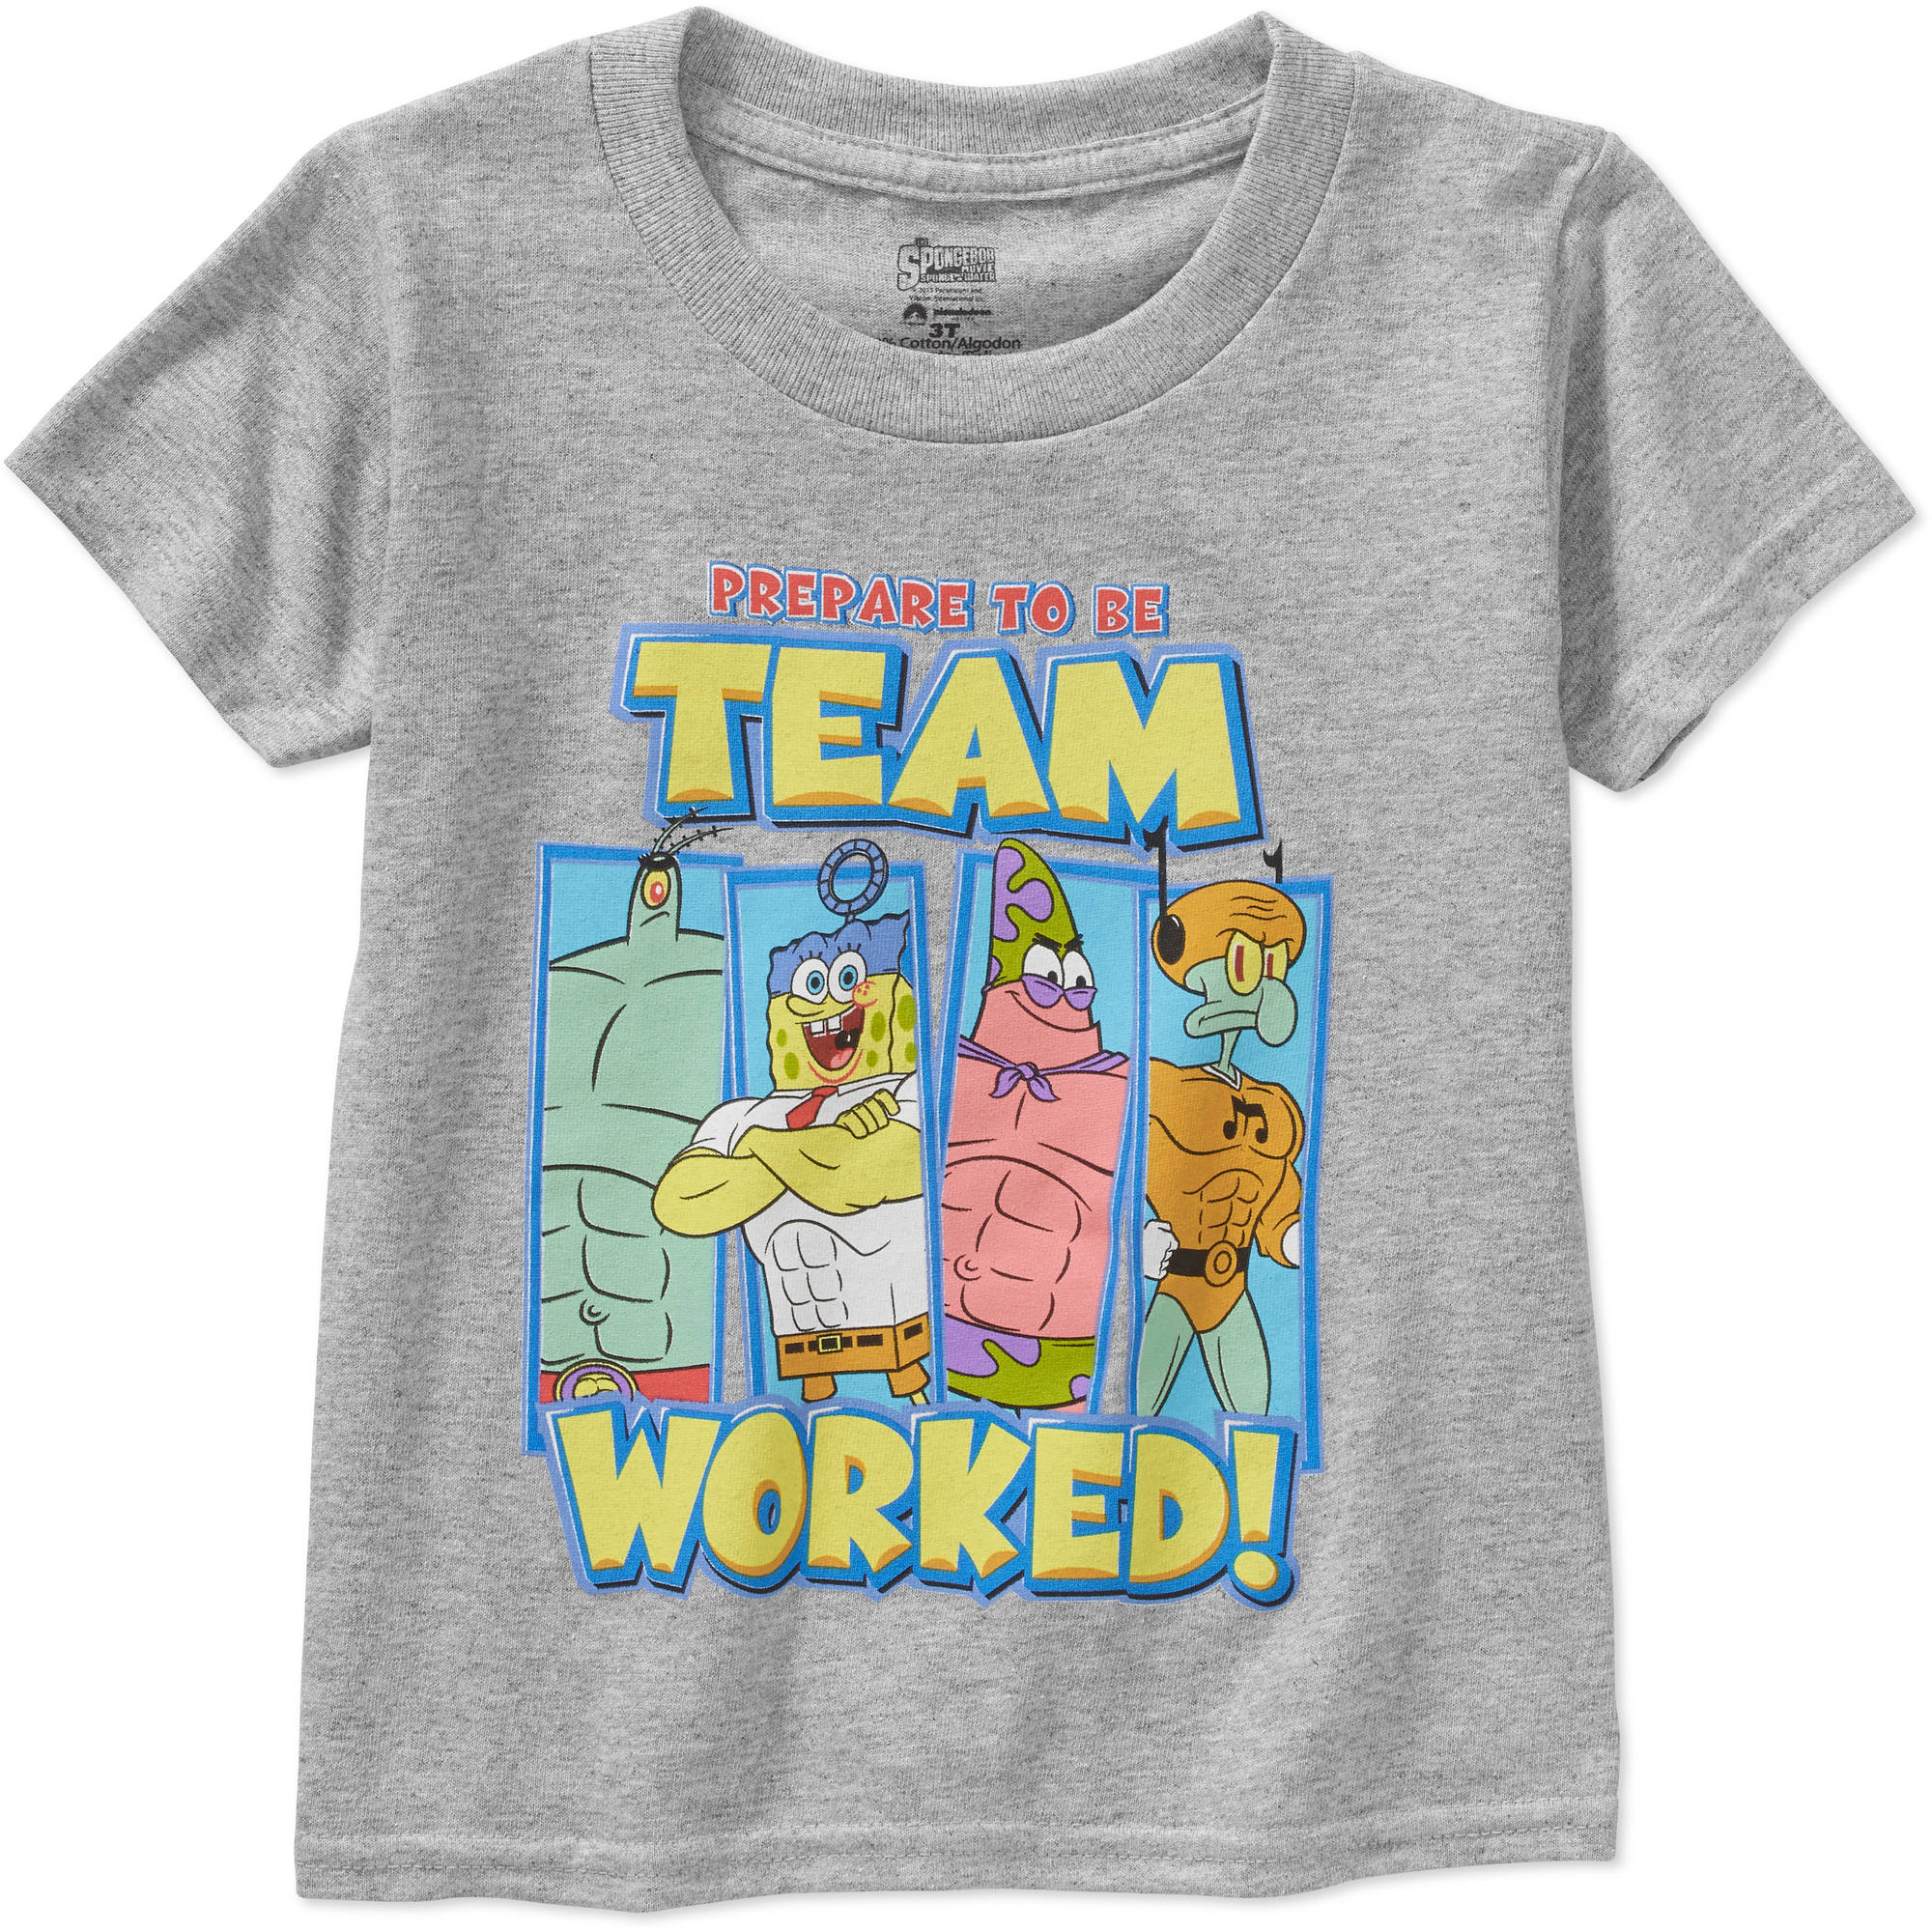 Nickelodeon Spongebob Team Worked Toddler Boy Short Sleeve Graphic Tee